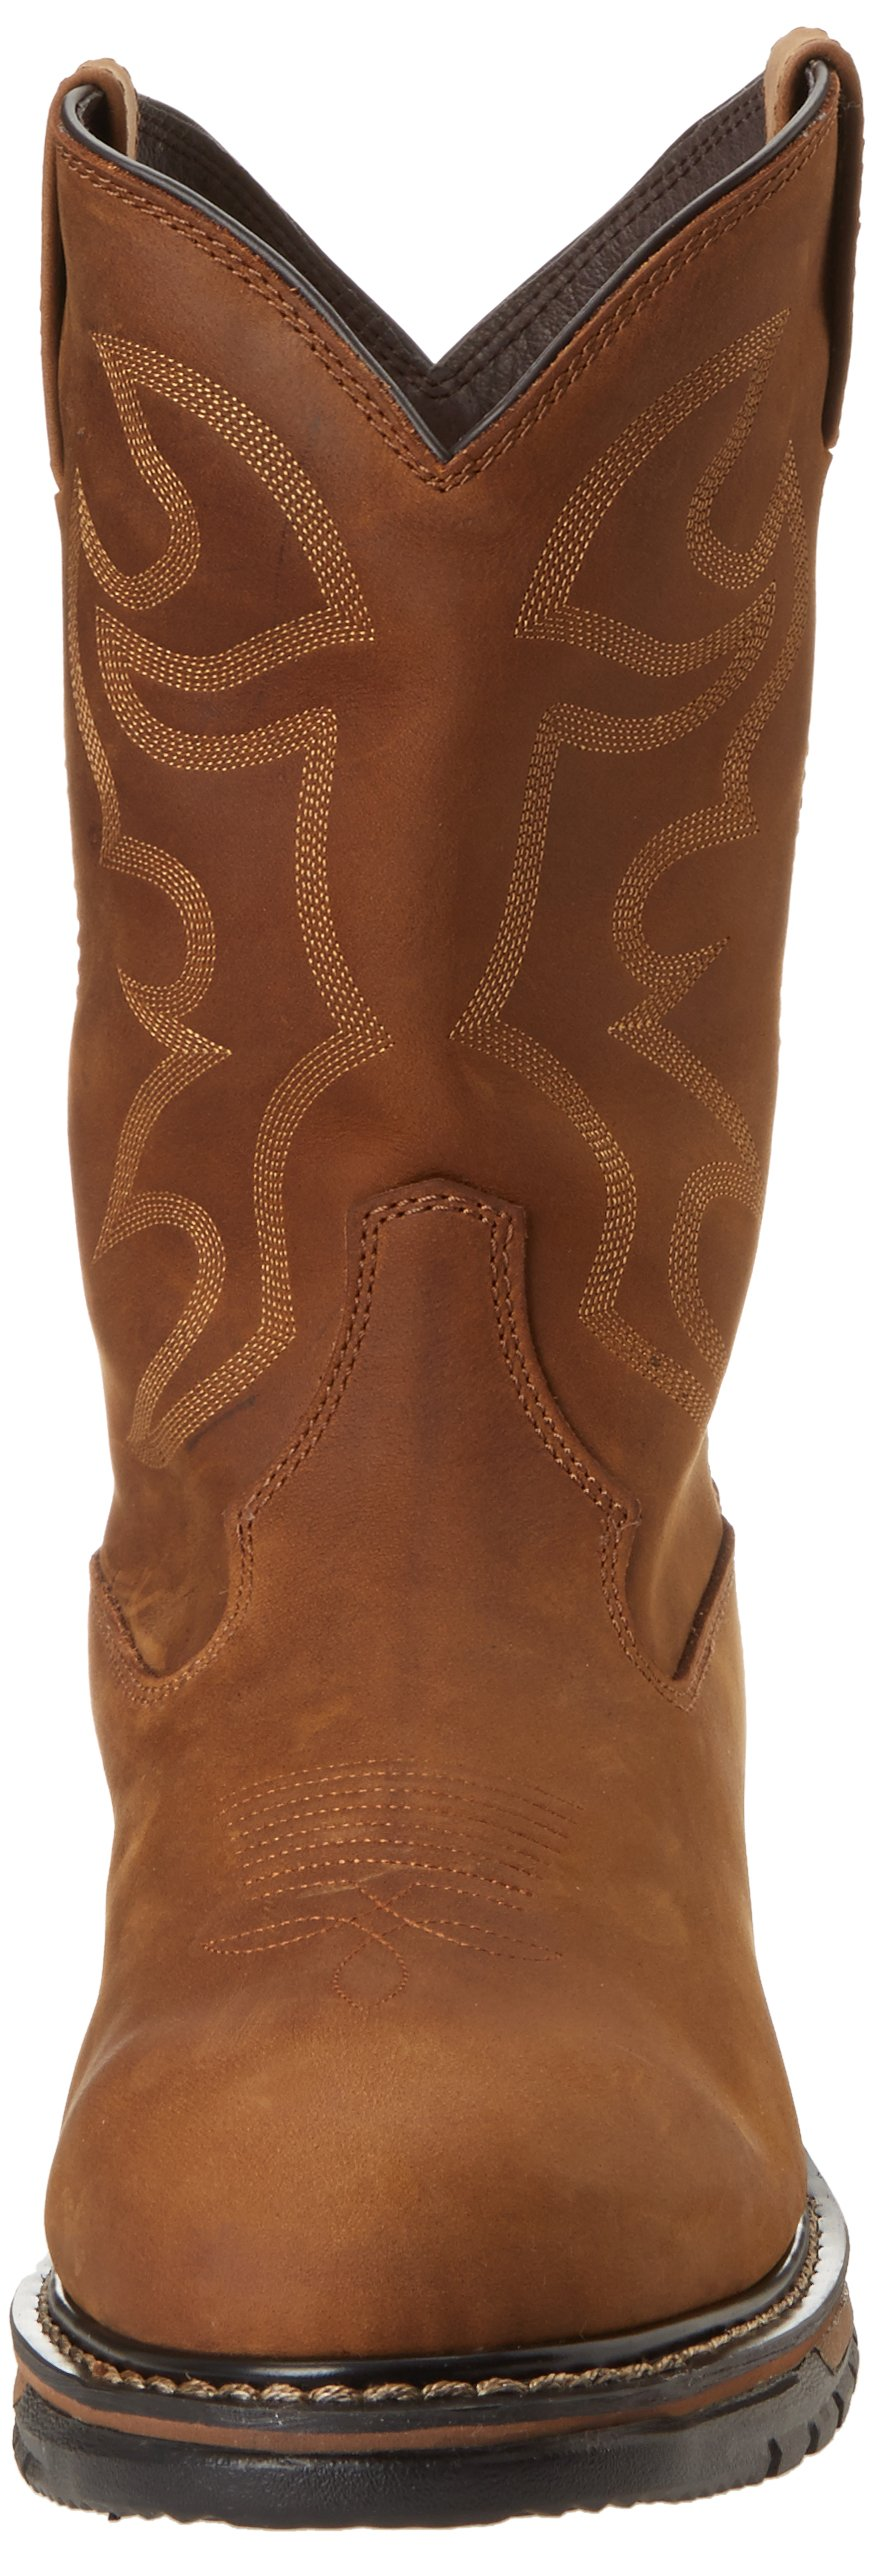 Rocky Men's FQ0002733 Boot, aztec crazy horse, 11 M US by Rocky (Image #4)